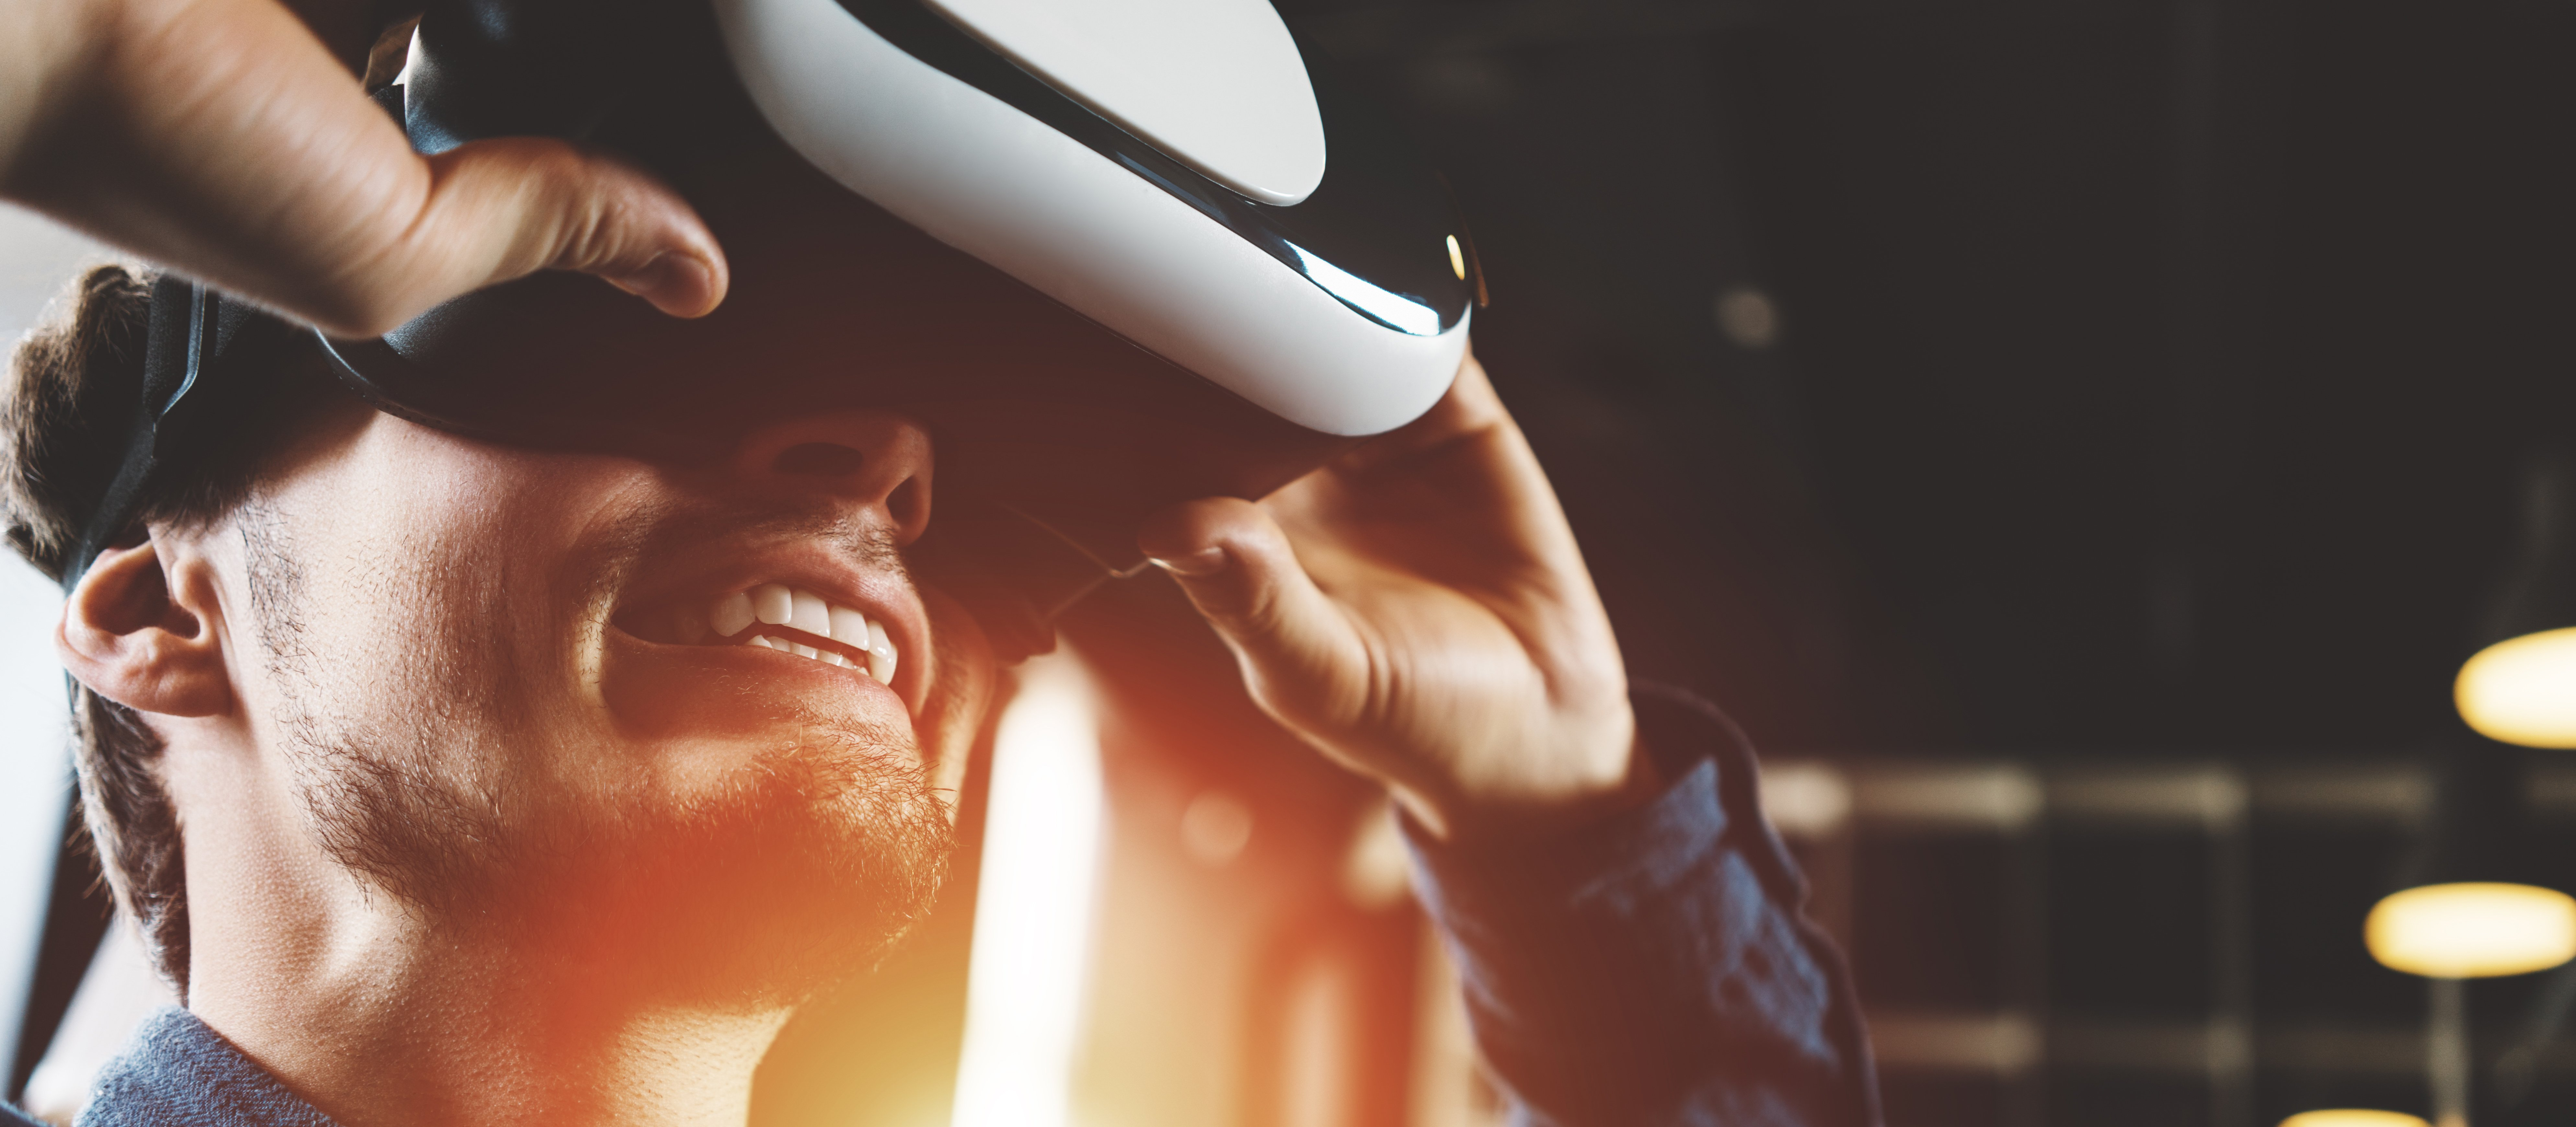 Man amazed by VR headset